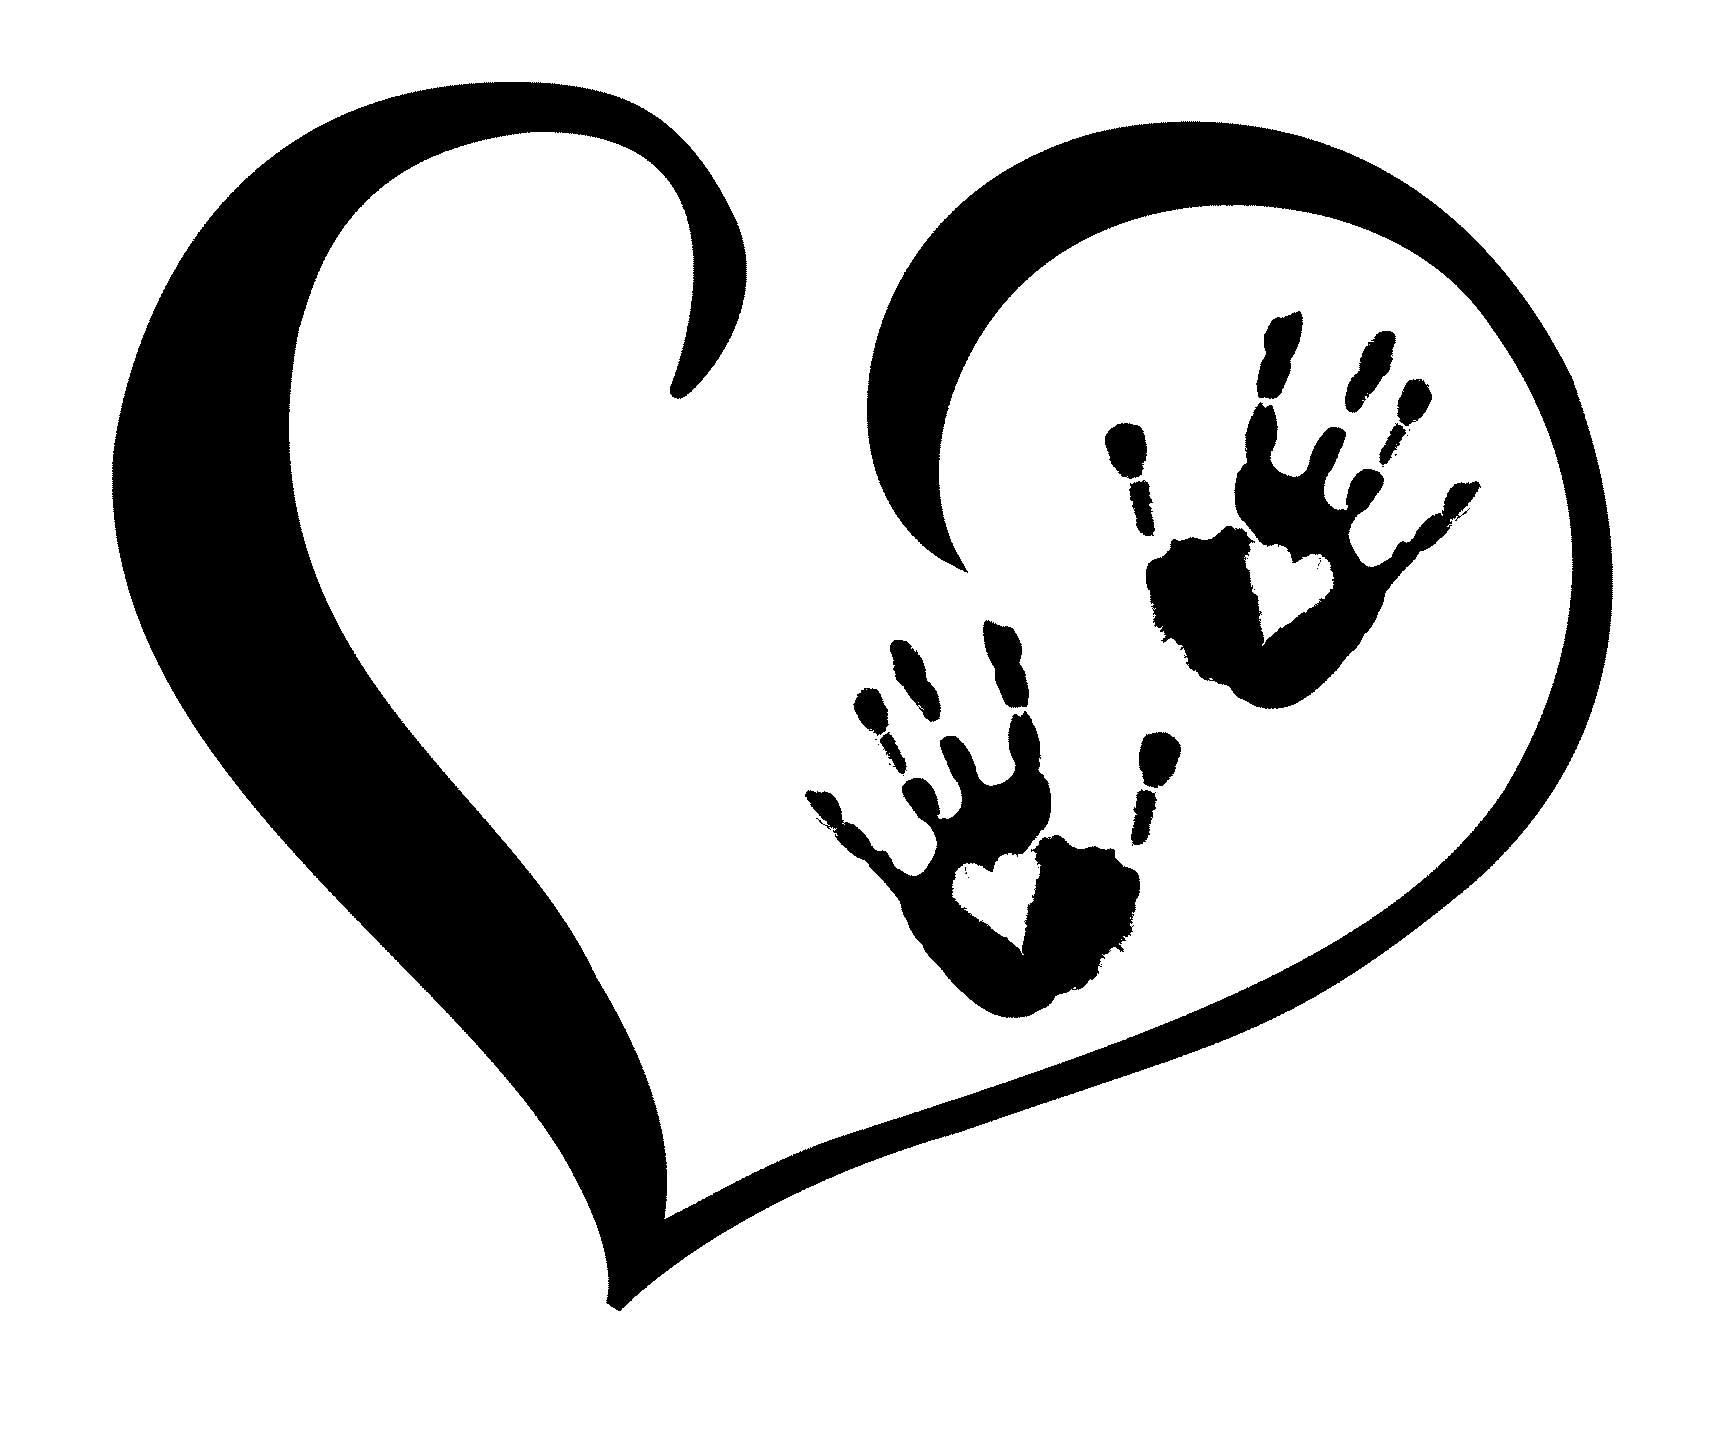 Baby Hands Clipart - Clipart Kid